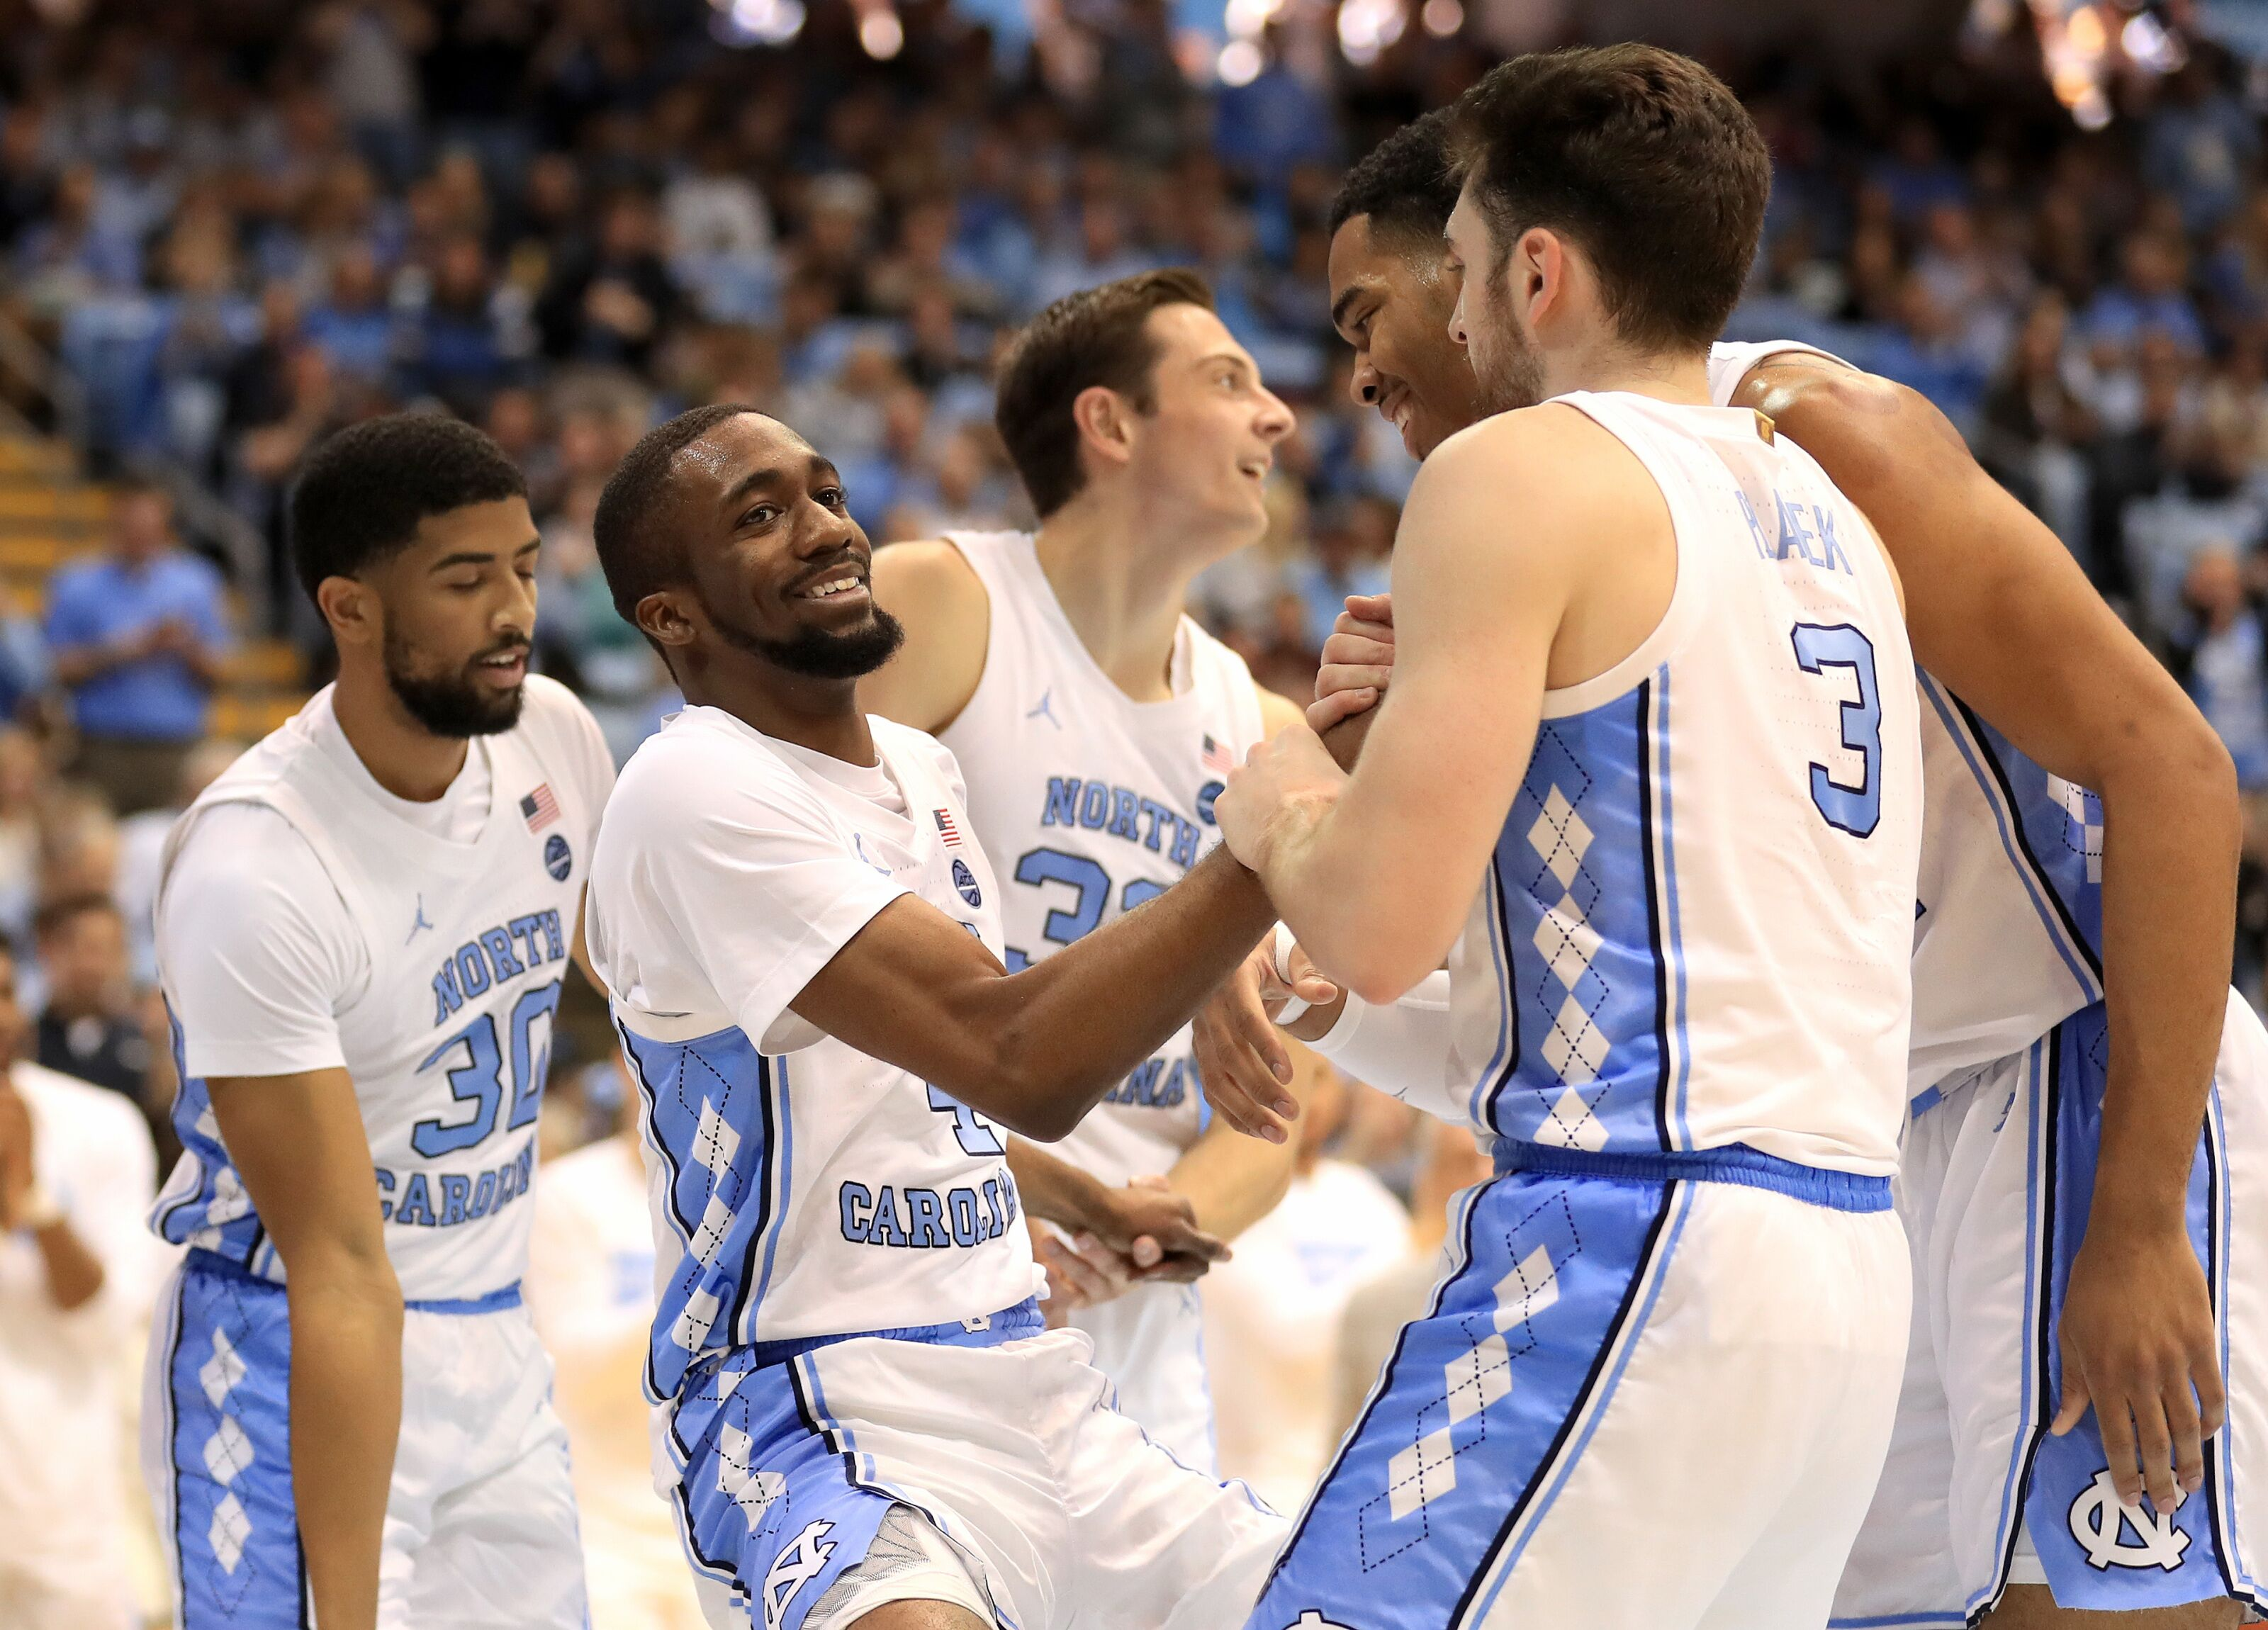 UNC Basketball: NCAA Tournament still possible for Tar Heels?